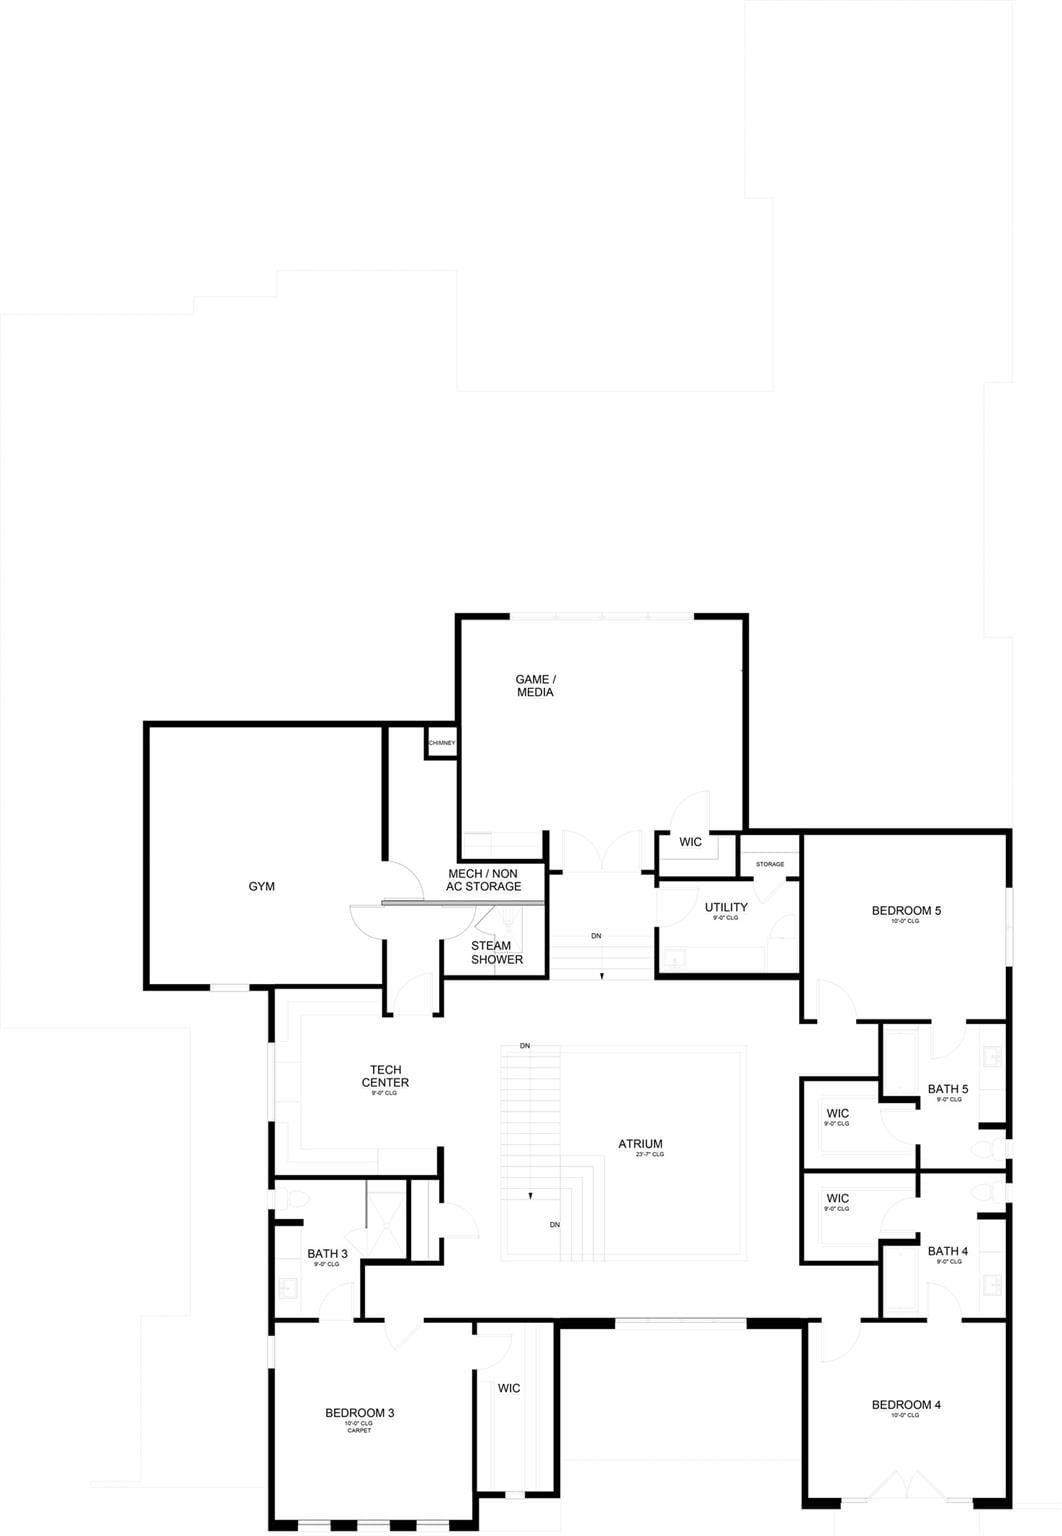 New Home Builders Midwick floor plan 2floor - Millennial Design + Build, Custom Home Builders in Dallas Texas, modern style homes, Property Evaluator, Interior Designers, using BIM Technology and Home 3D Model.